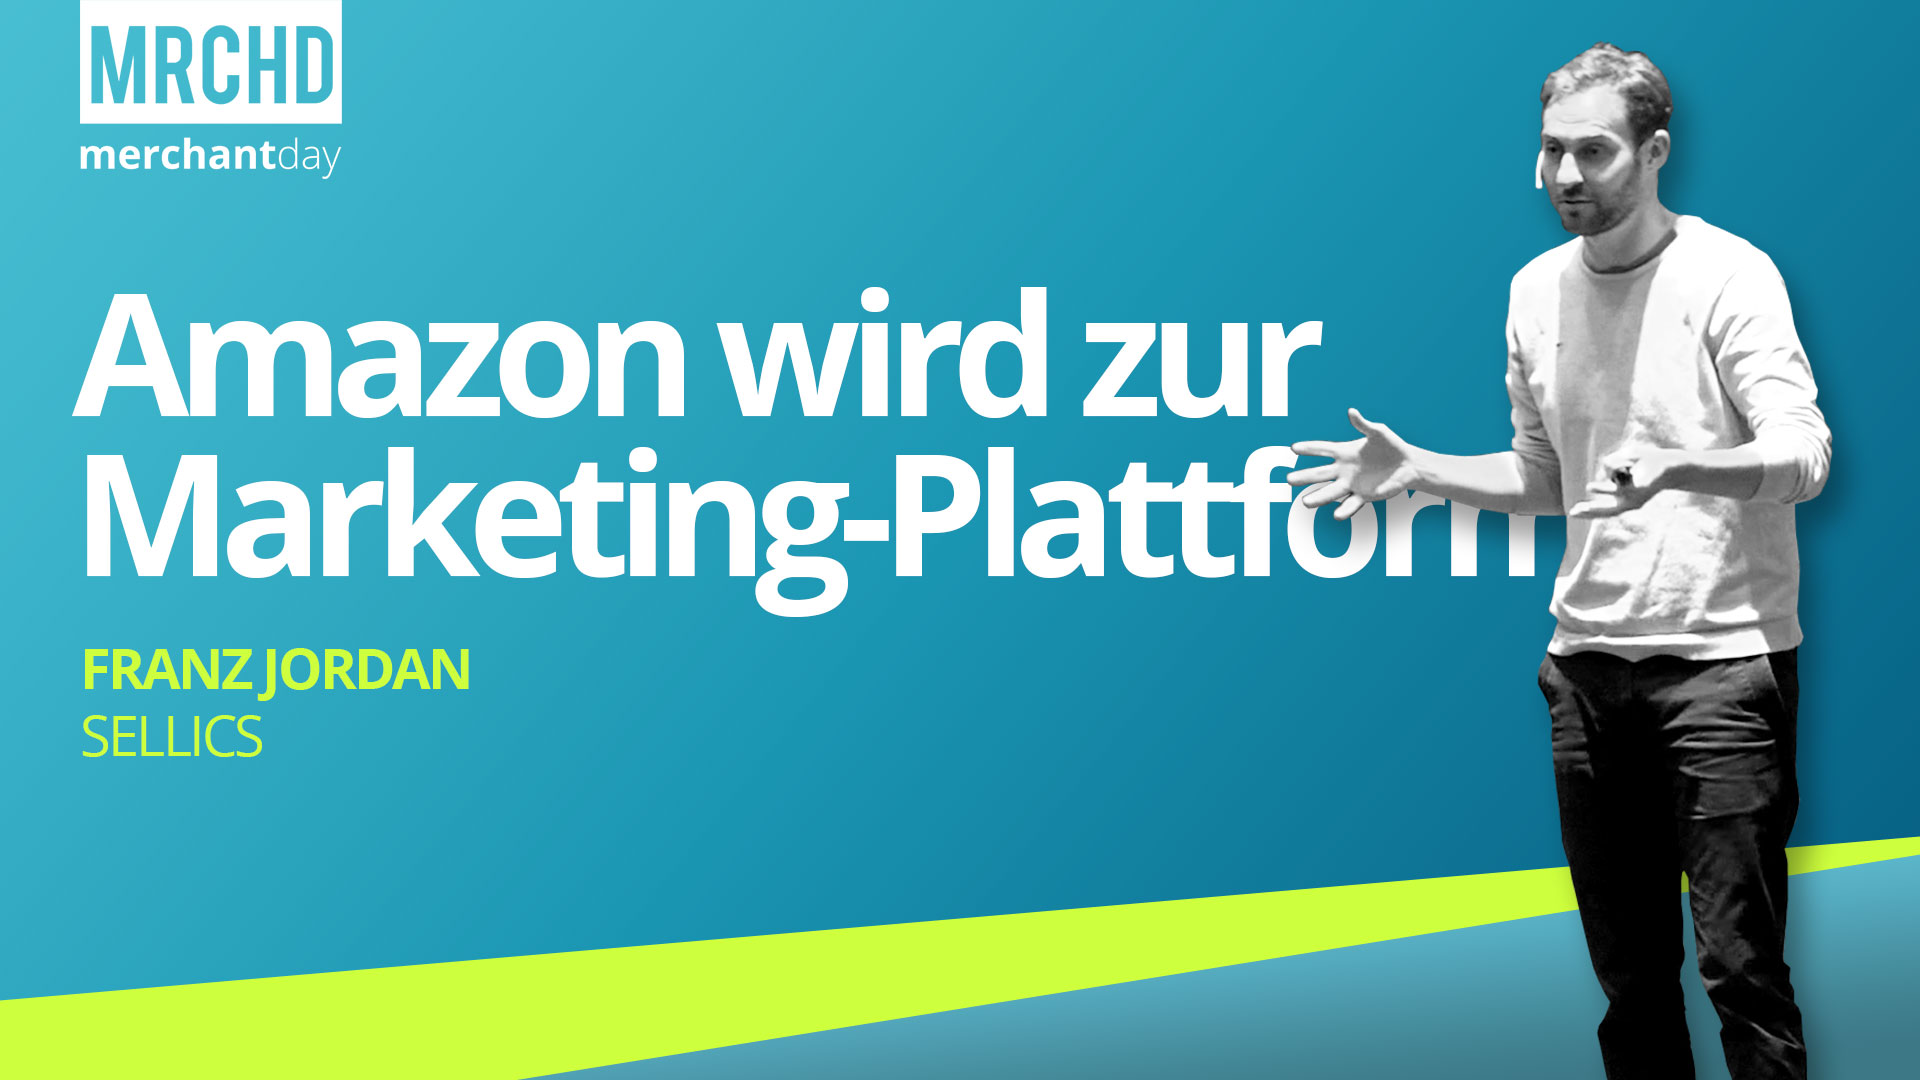 merchantday-Konferenz-2019-Vortrag-Franz-Jordan-Amazon-Seller-Vendor